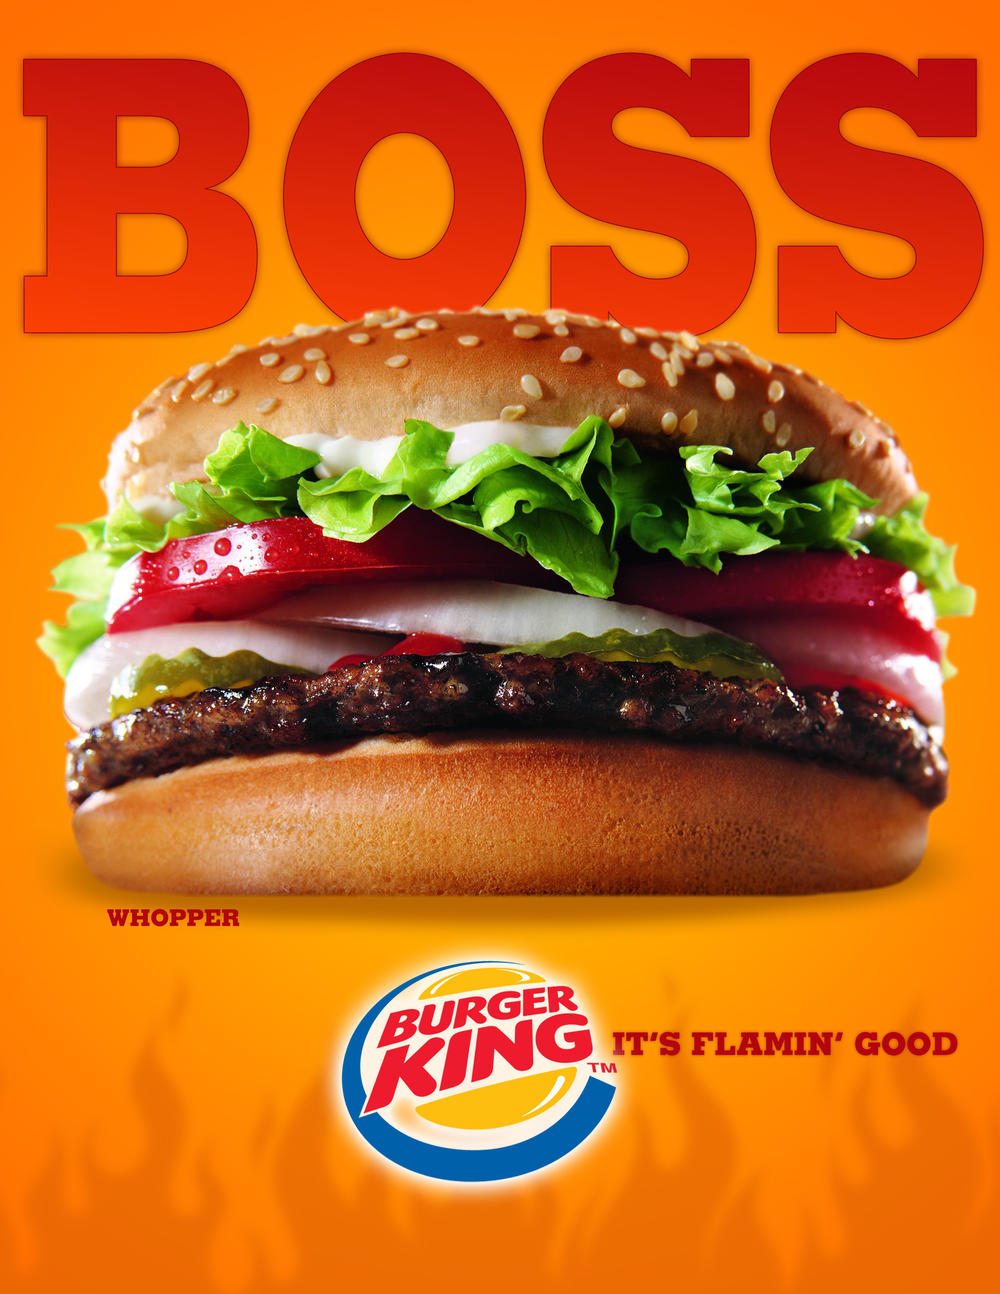 burger king assignment Burger king's 'who is the king' vote reportedly angers belgian royal royal brand name against belgium's king philippe ahead of the company's first burger king restaurant in the western europe country general assignment reporter, huffpost suggest a correction more.